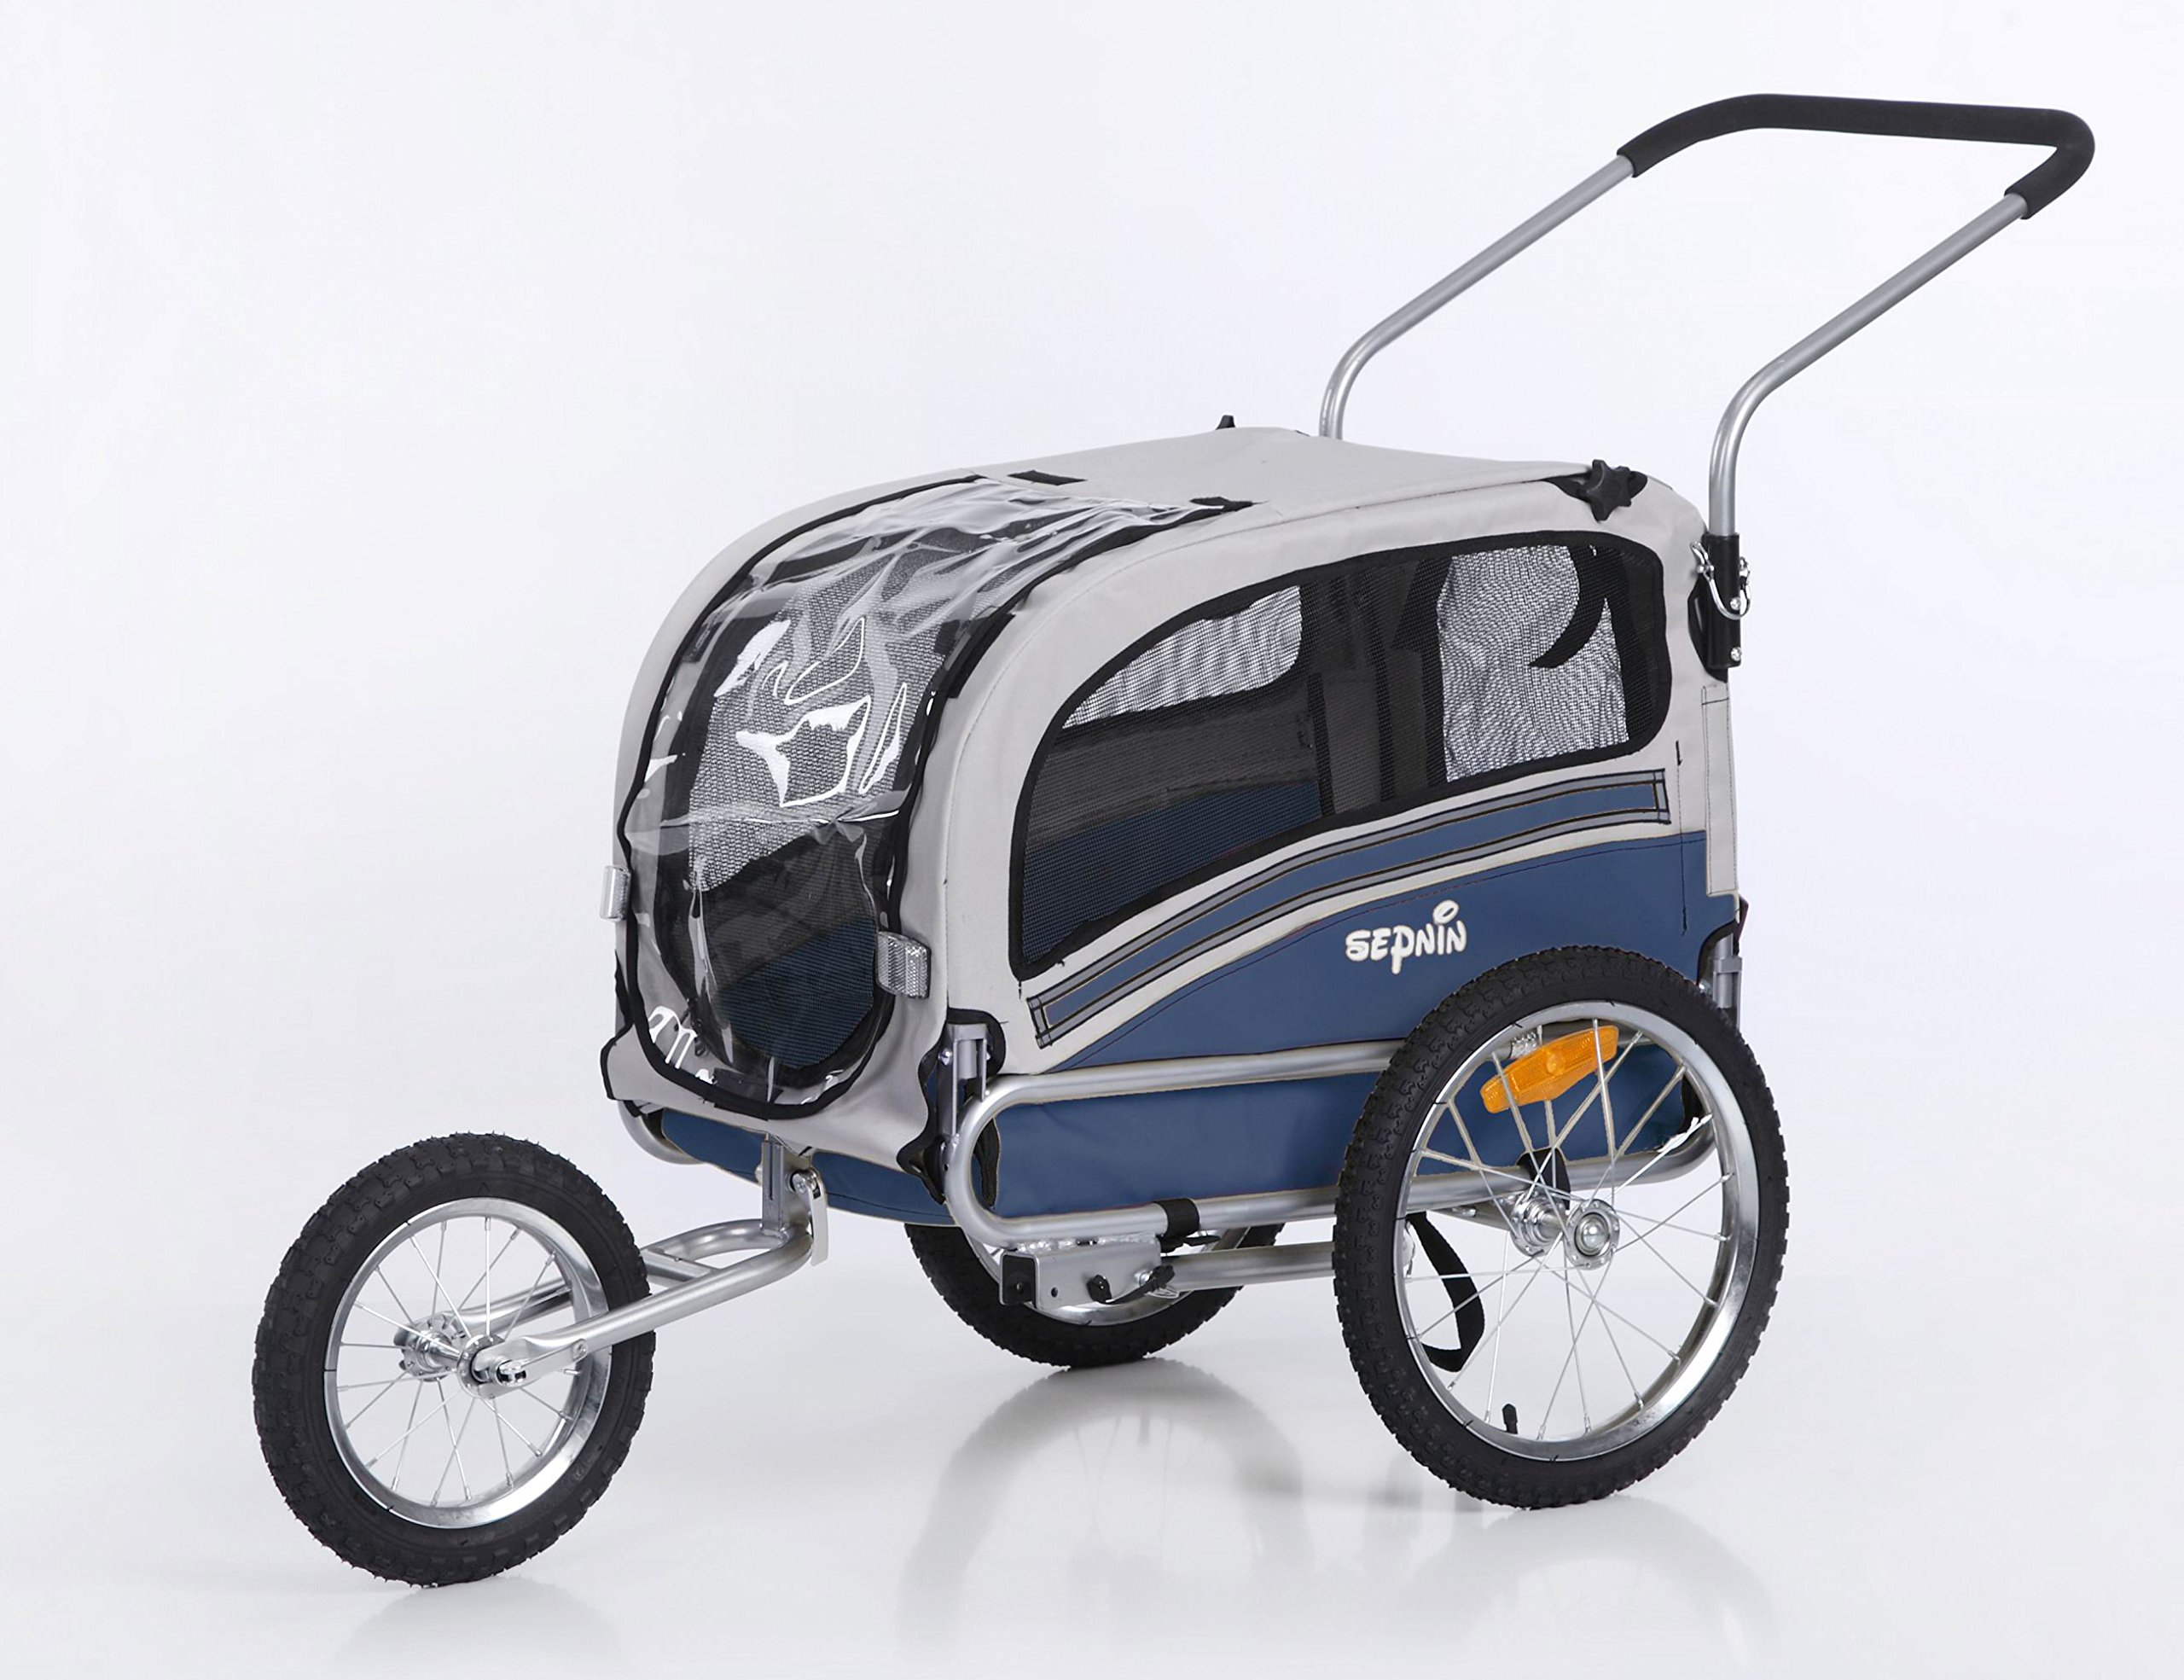 Sepnine 2 in1 pet dog bike trailer bicycle trailer and stroller jogger 20303 (blue/grey)